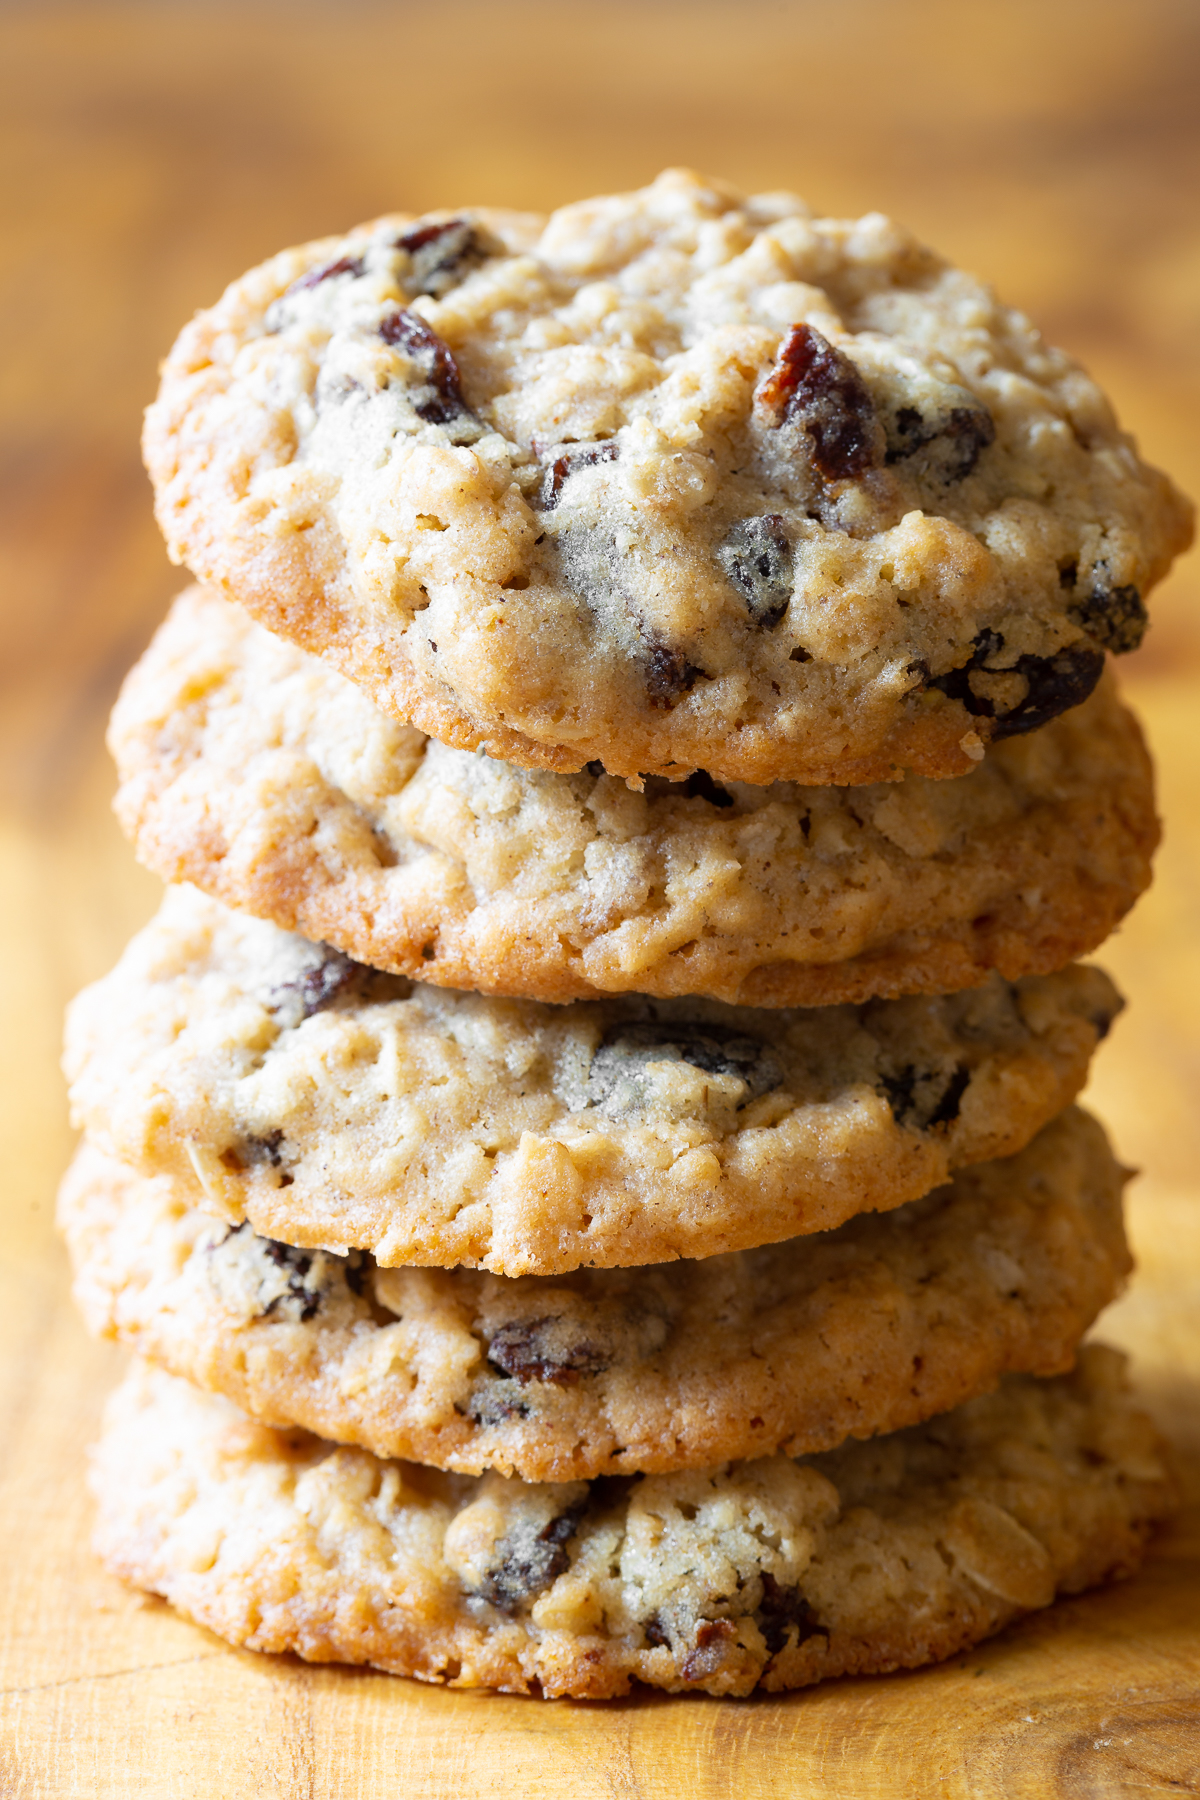 Wonderful stack of these oatmeal filled cookies